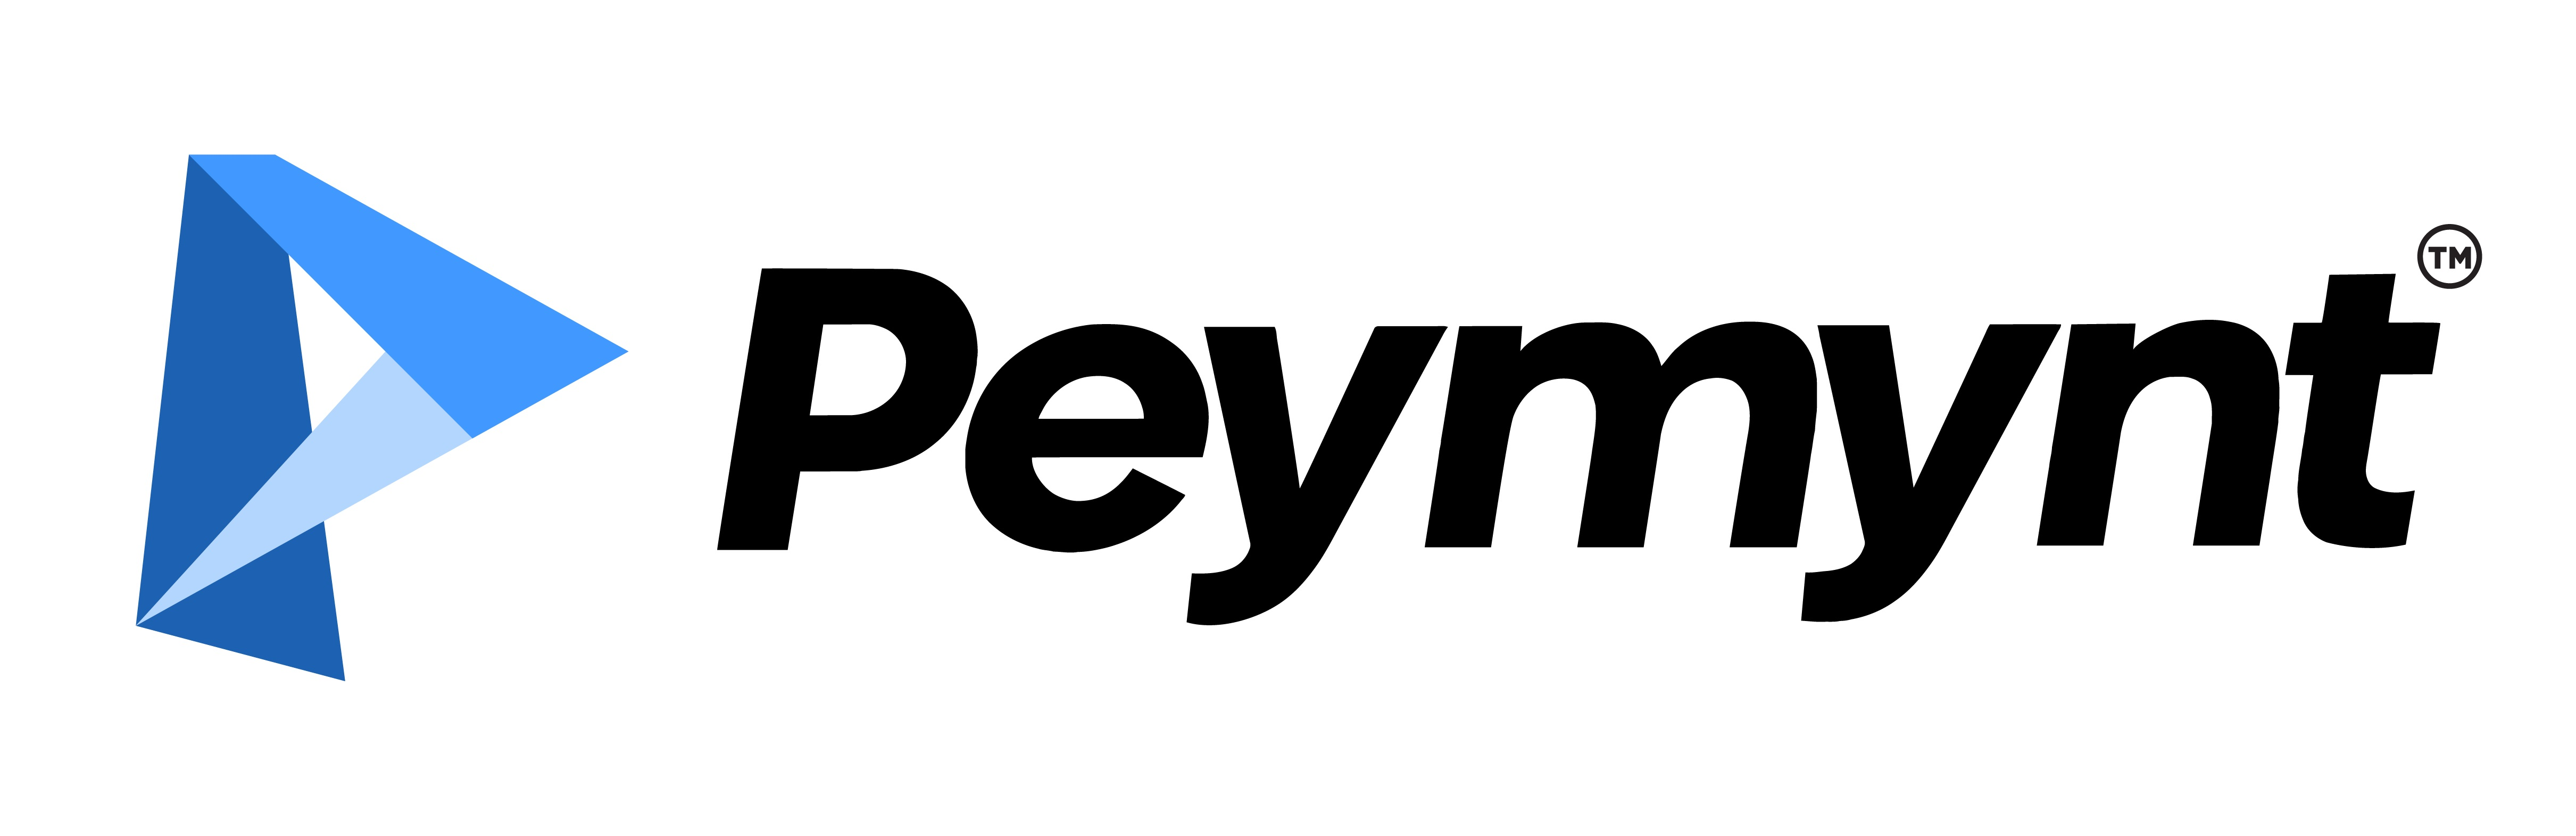 Invoicing Platform Peymynt Launches Services for Businesses, Freelancers, Consultants, and More